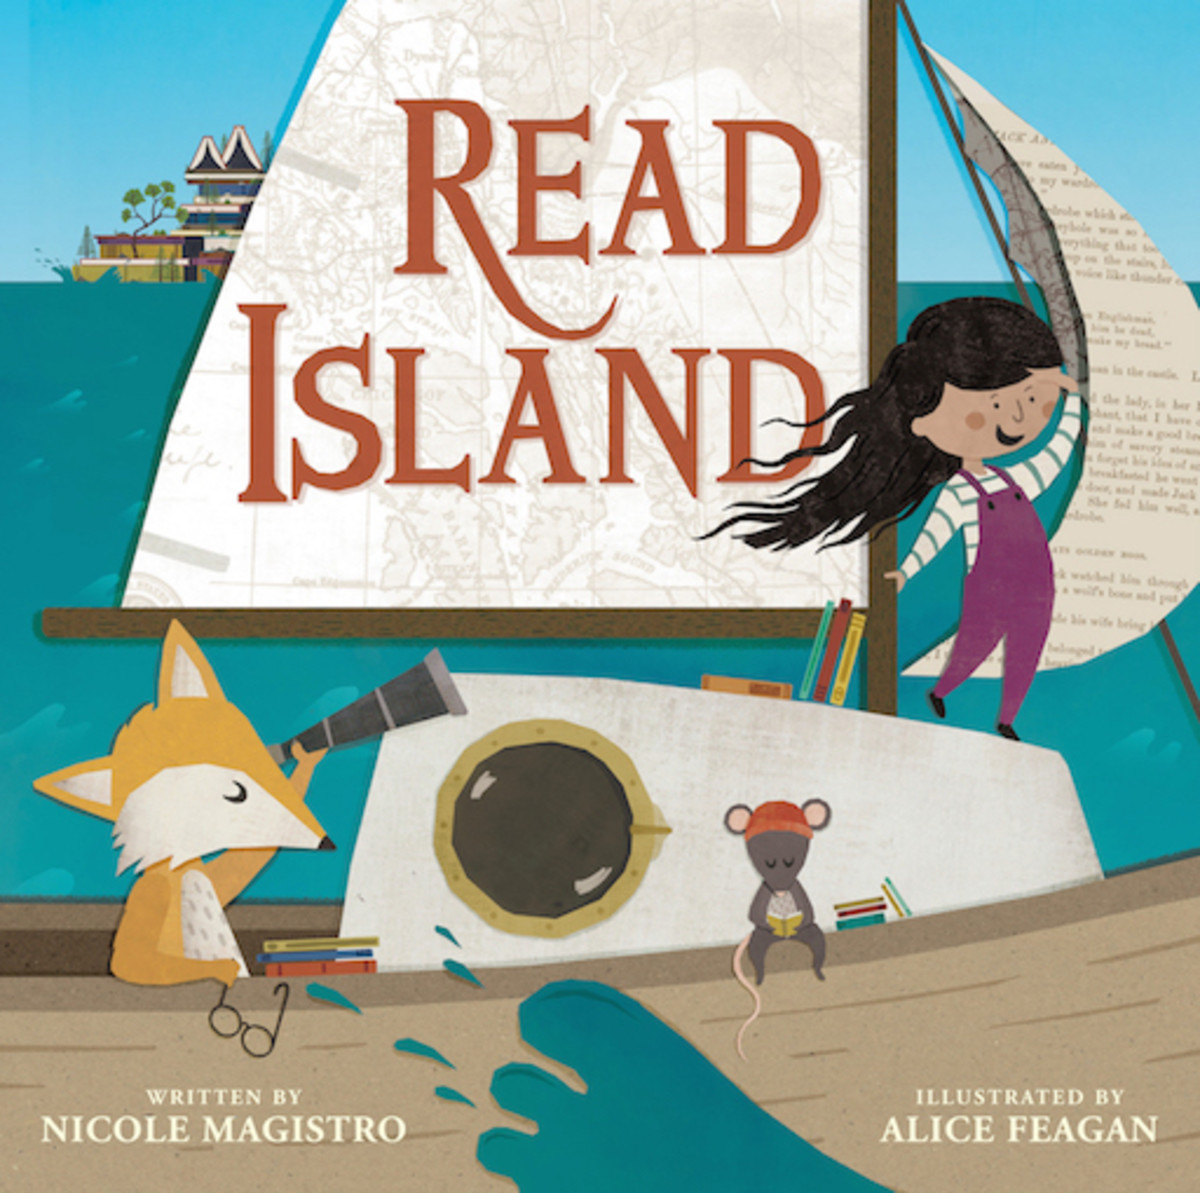 read_island_written_by_nicole_magistro_illustrated_by_alice_feagan_book_cover_image